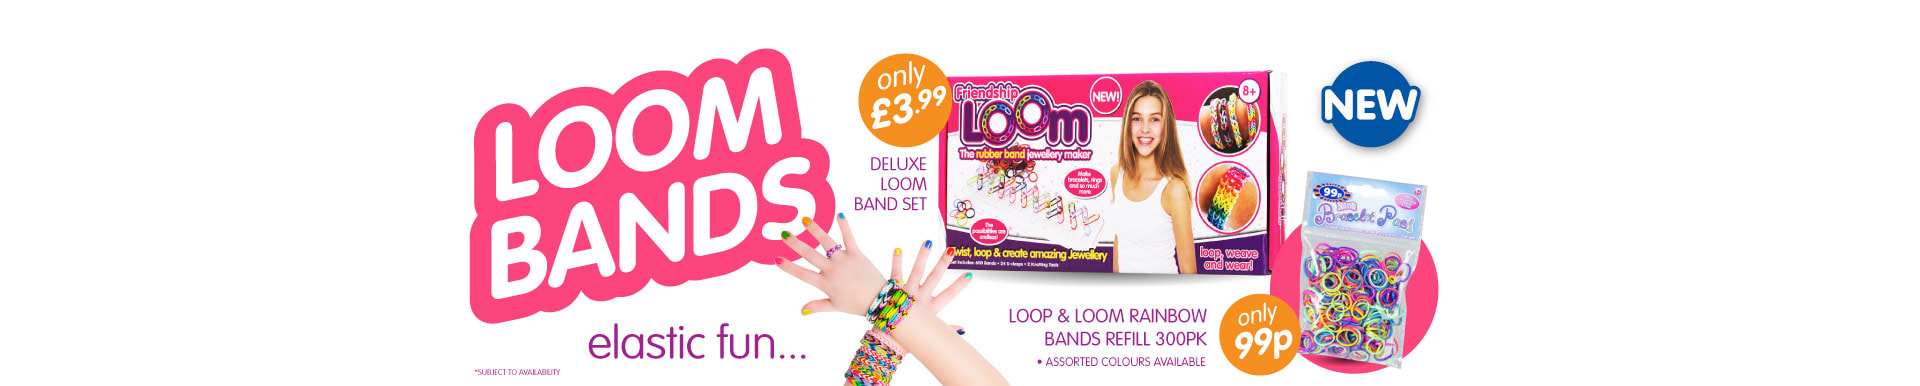 Loom Bands Kit and refills from B&M from 99p.